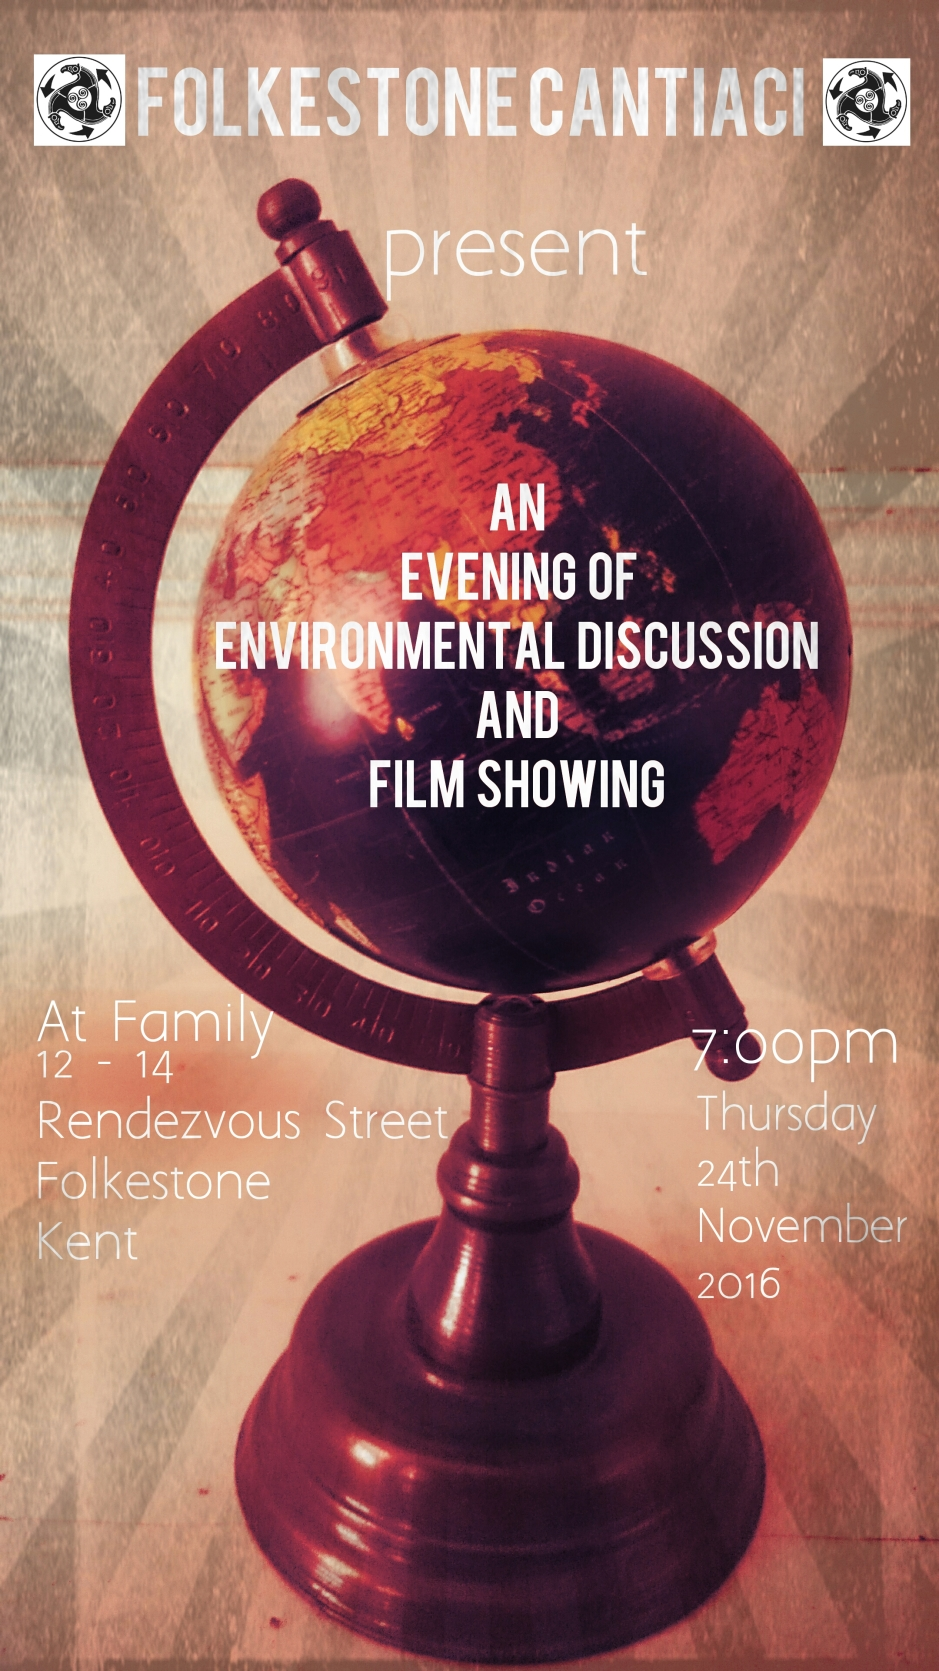 Folkestone Cantiaci, Folkestone, Cantiaci, Community, Transition Town, Event, Family, Environmental, Environment, Discussion, Film Showing